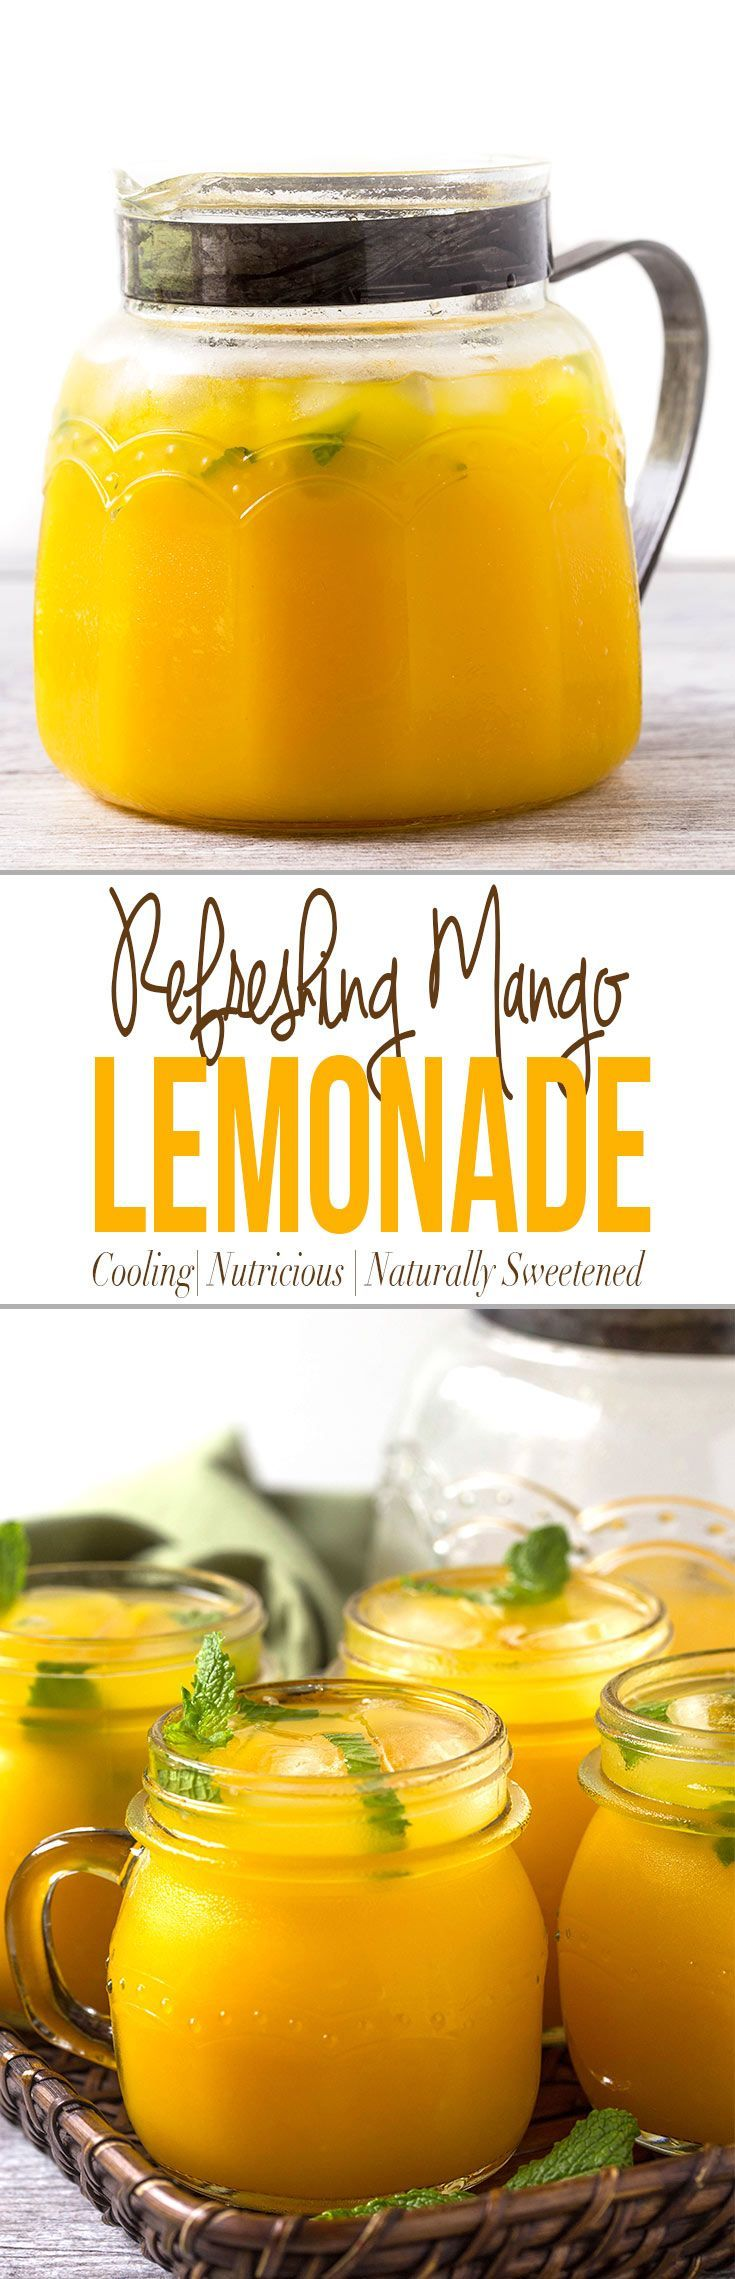 Refreshing mango lemonade to enjoy hot summer days. Prepared using fresh zesty lemon juice, honey, & mango pulp. Healthy, delicious & naturally sweetened fresh lemonade via @watchwhatueat (Vegan Bbq Dessert)